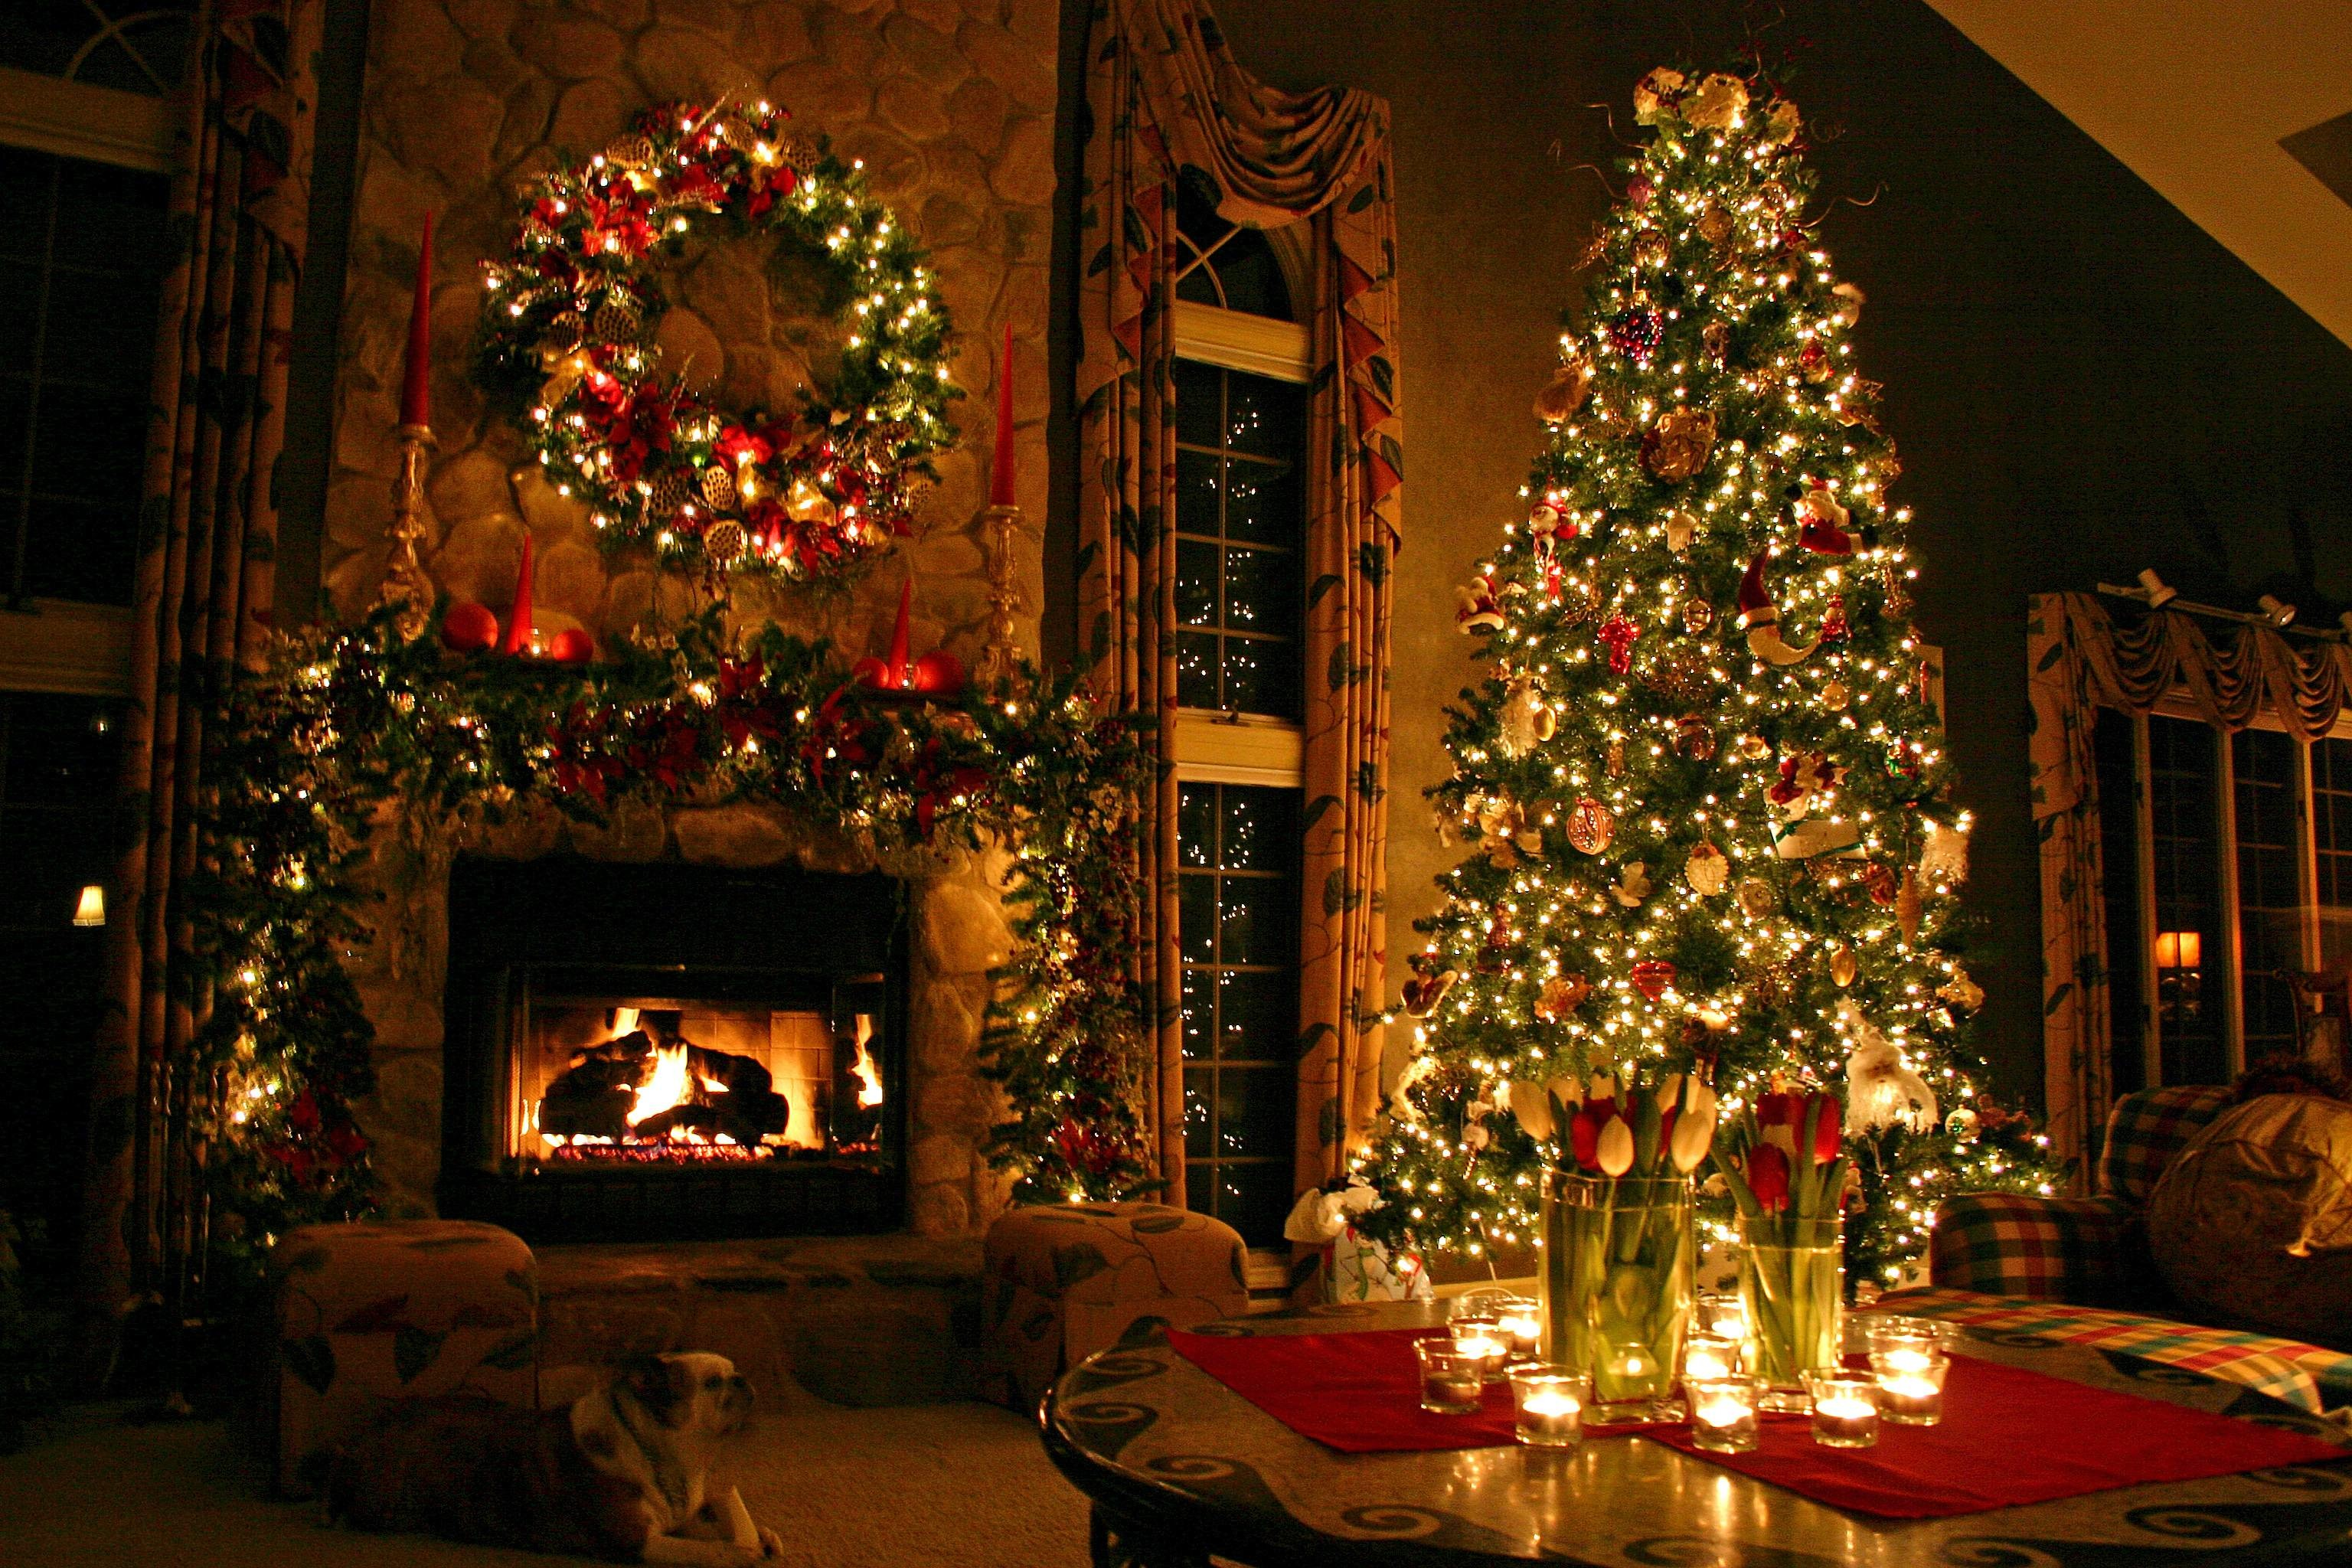 3072x2048 christmas tree desktop wallpapers christmas tree images cool